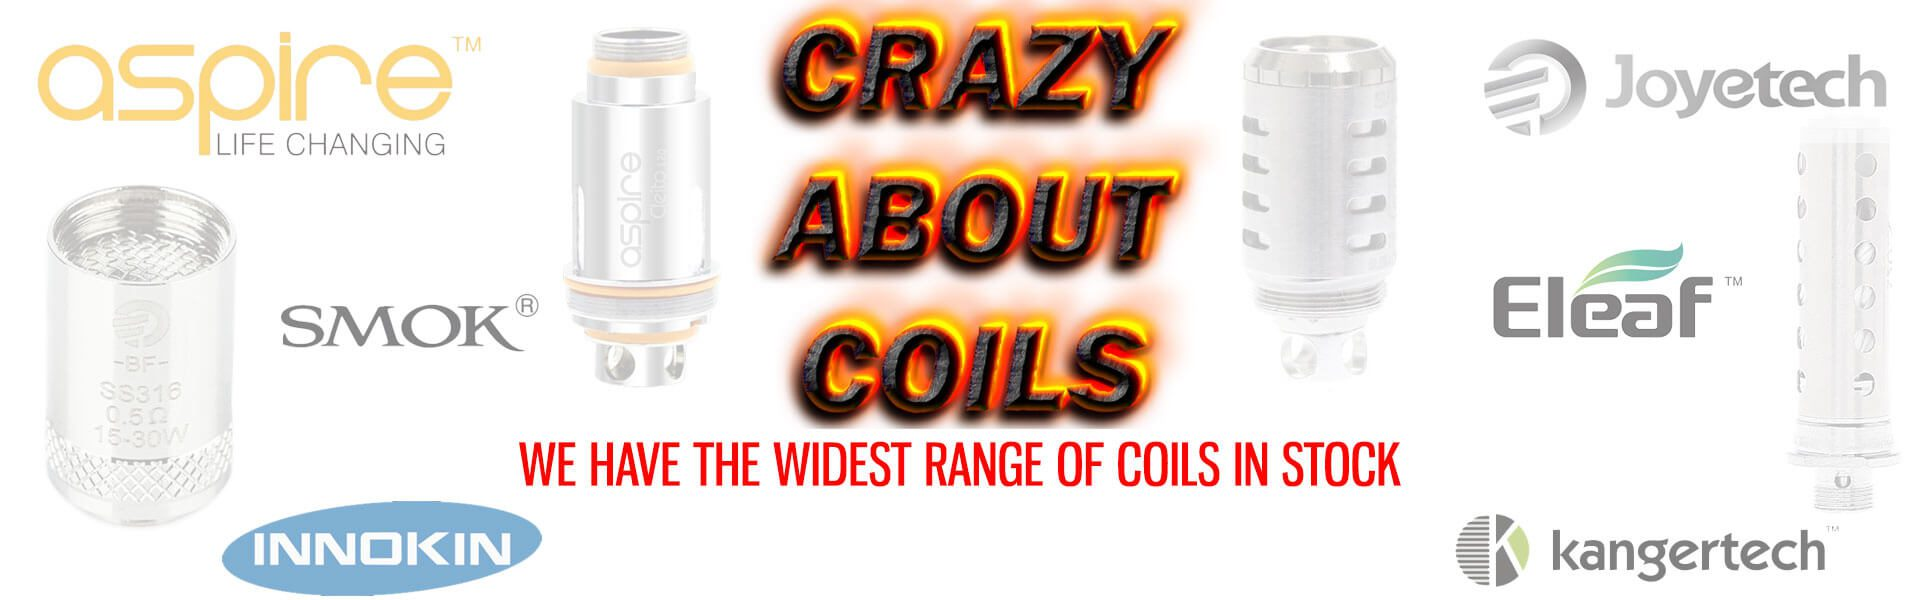 crazy about coils optimized